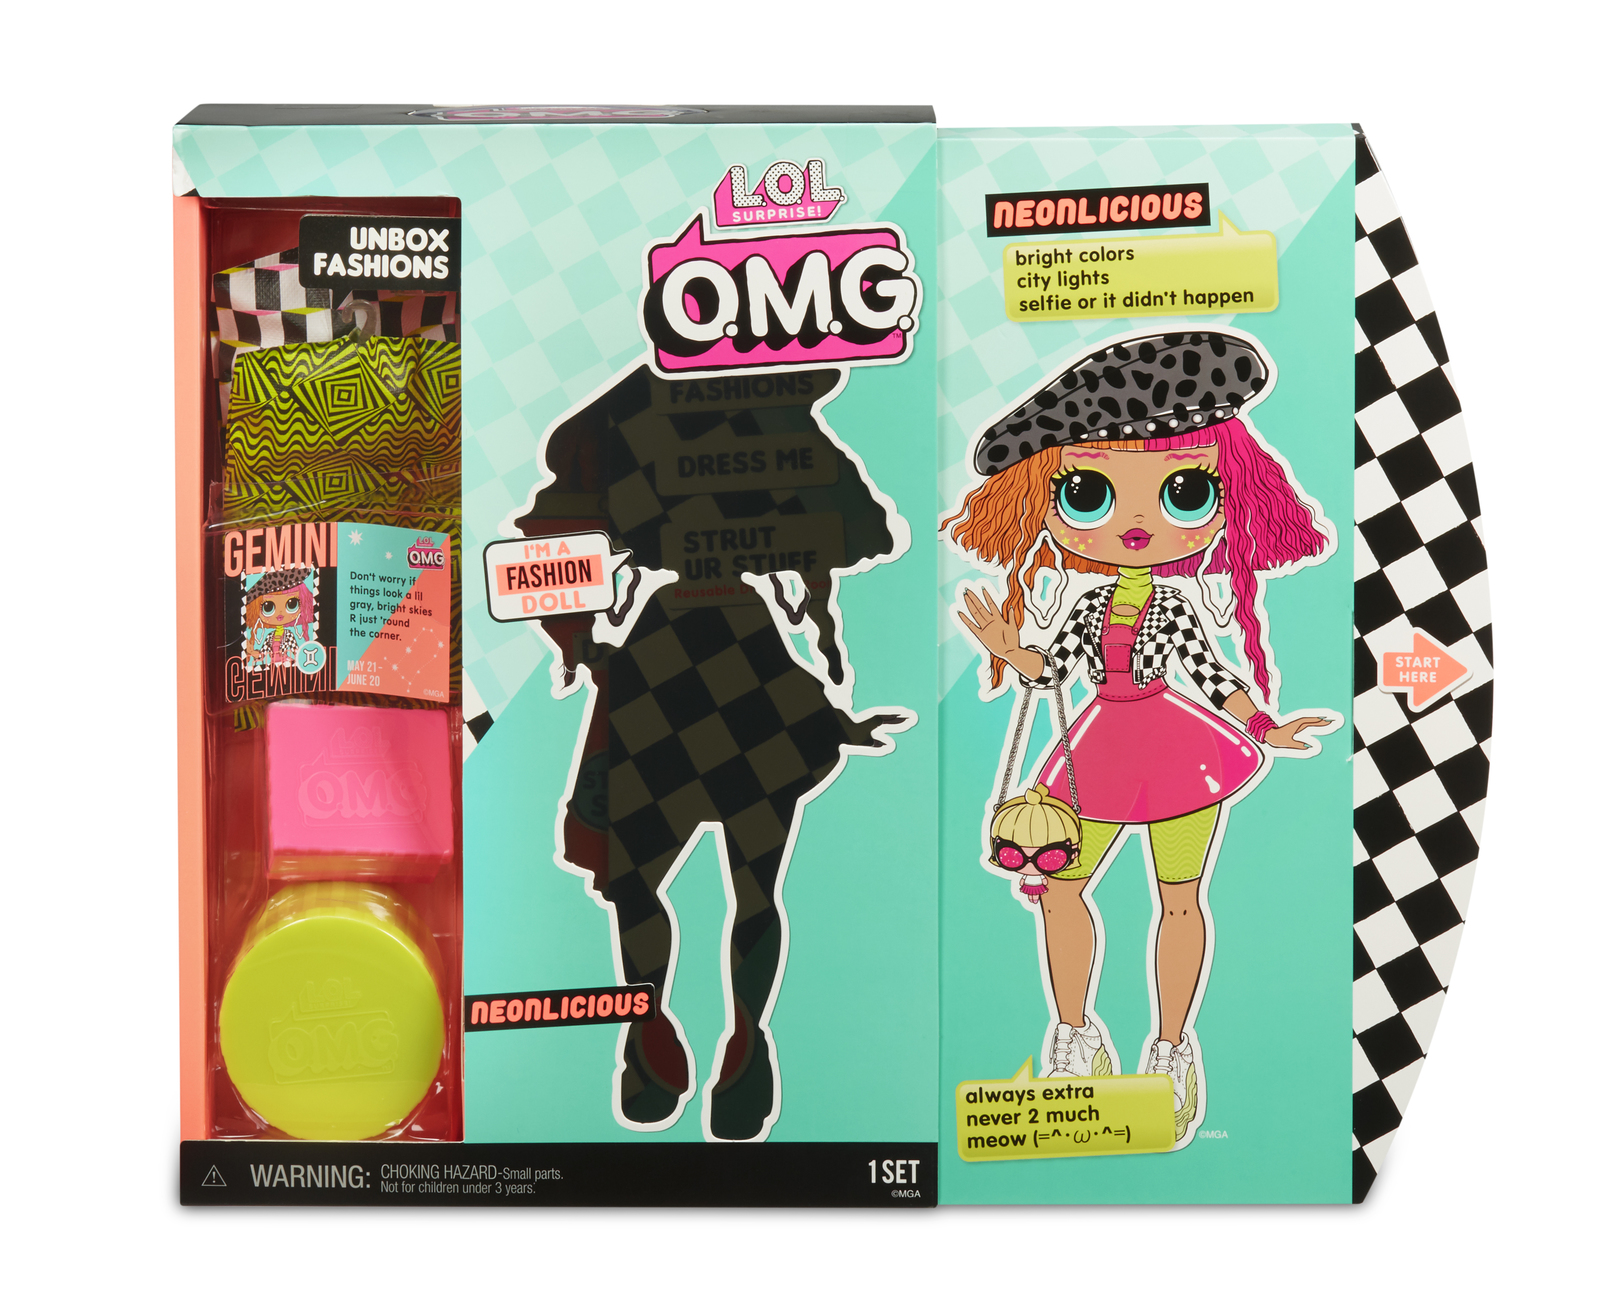 L.O.L. Surprise! - O.M.G Fashion Doll (Neonlicious) image